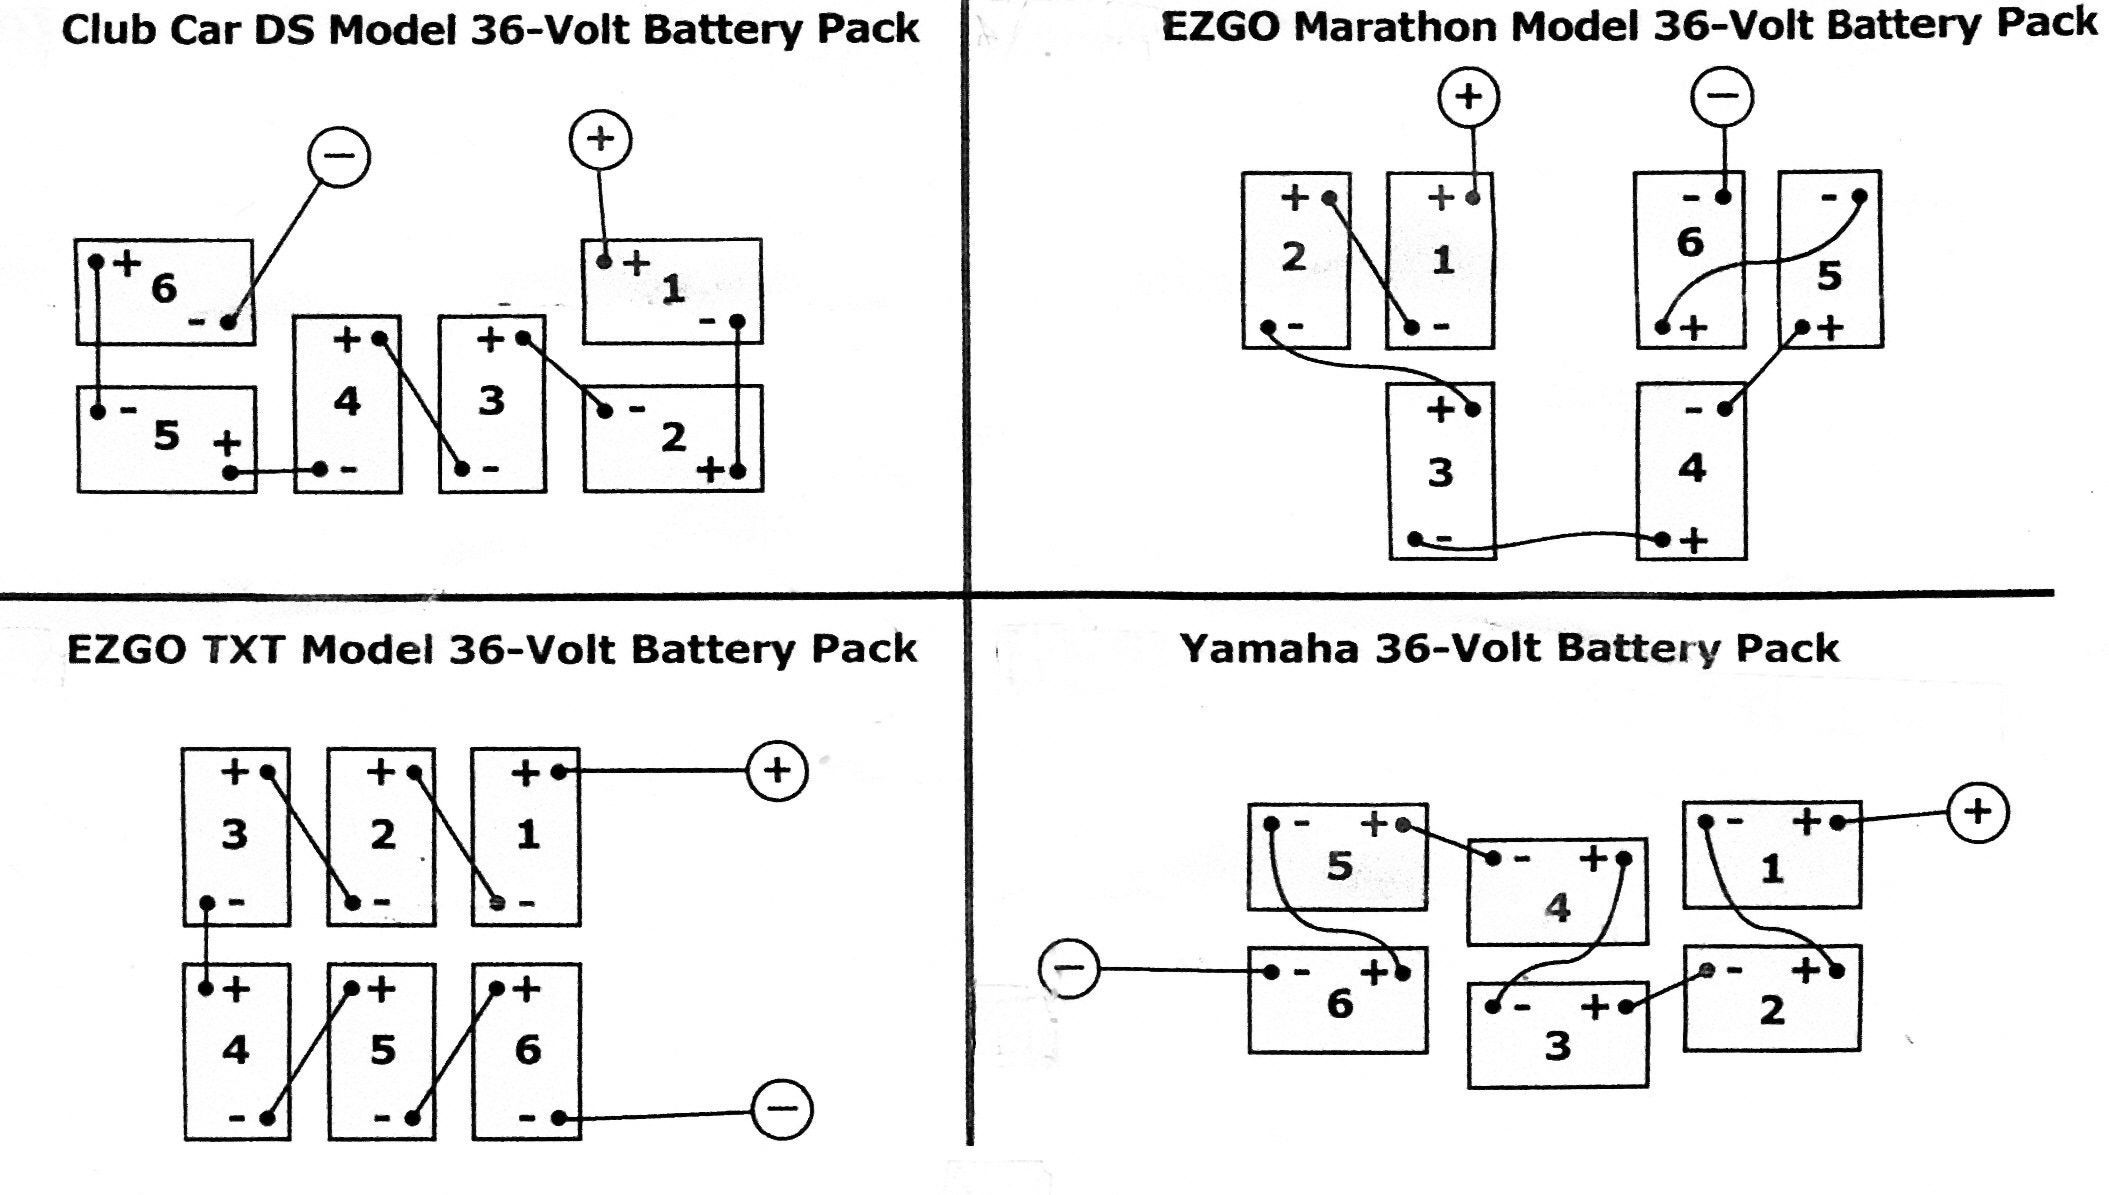 Club Car Battery Wiring Diagram 36 Volt Awesome In 2020